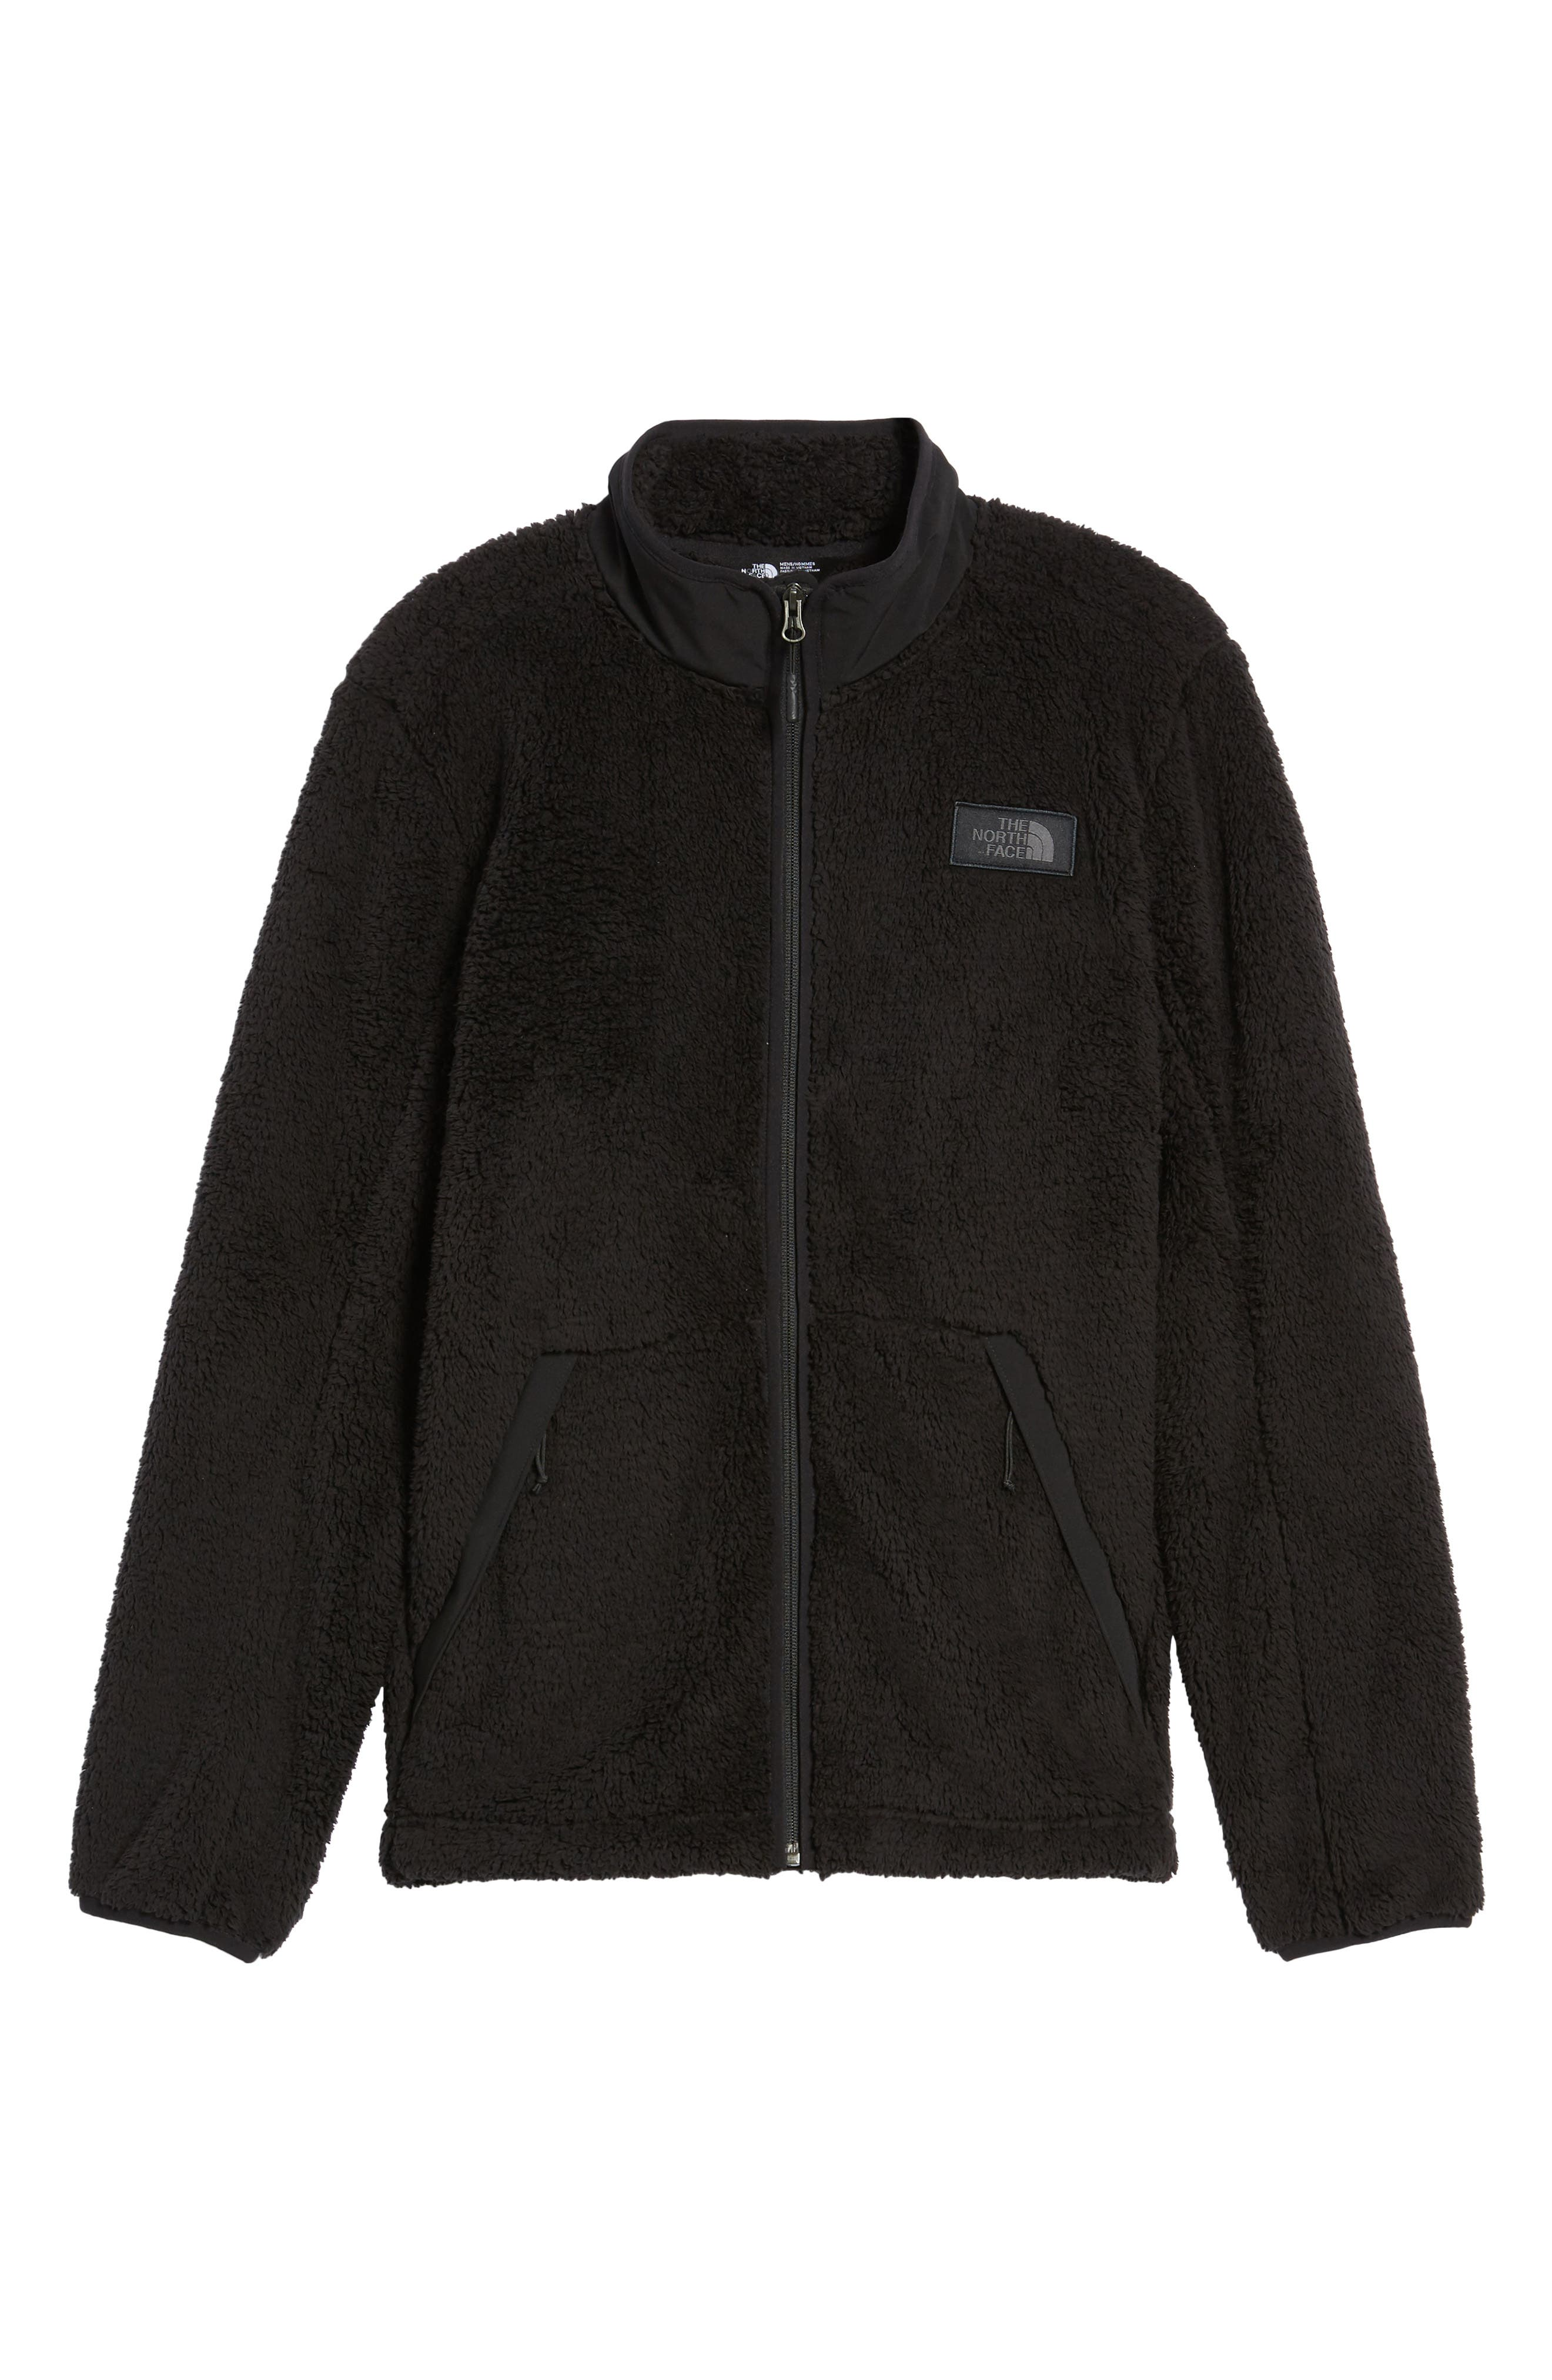 THE NORTH FACE, Campshire Zip Fleece Jacket, Alternate thumbnail 7, color, 001